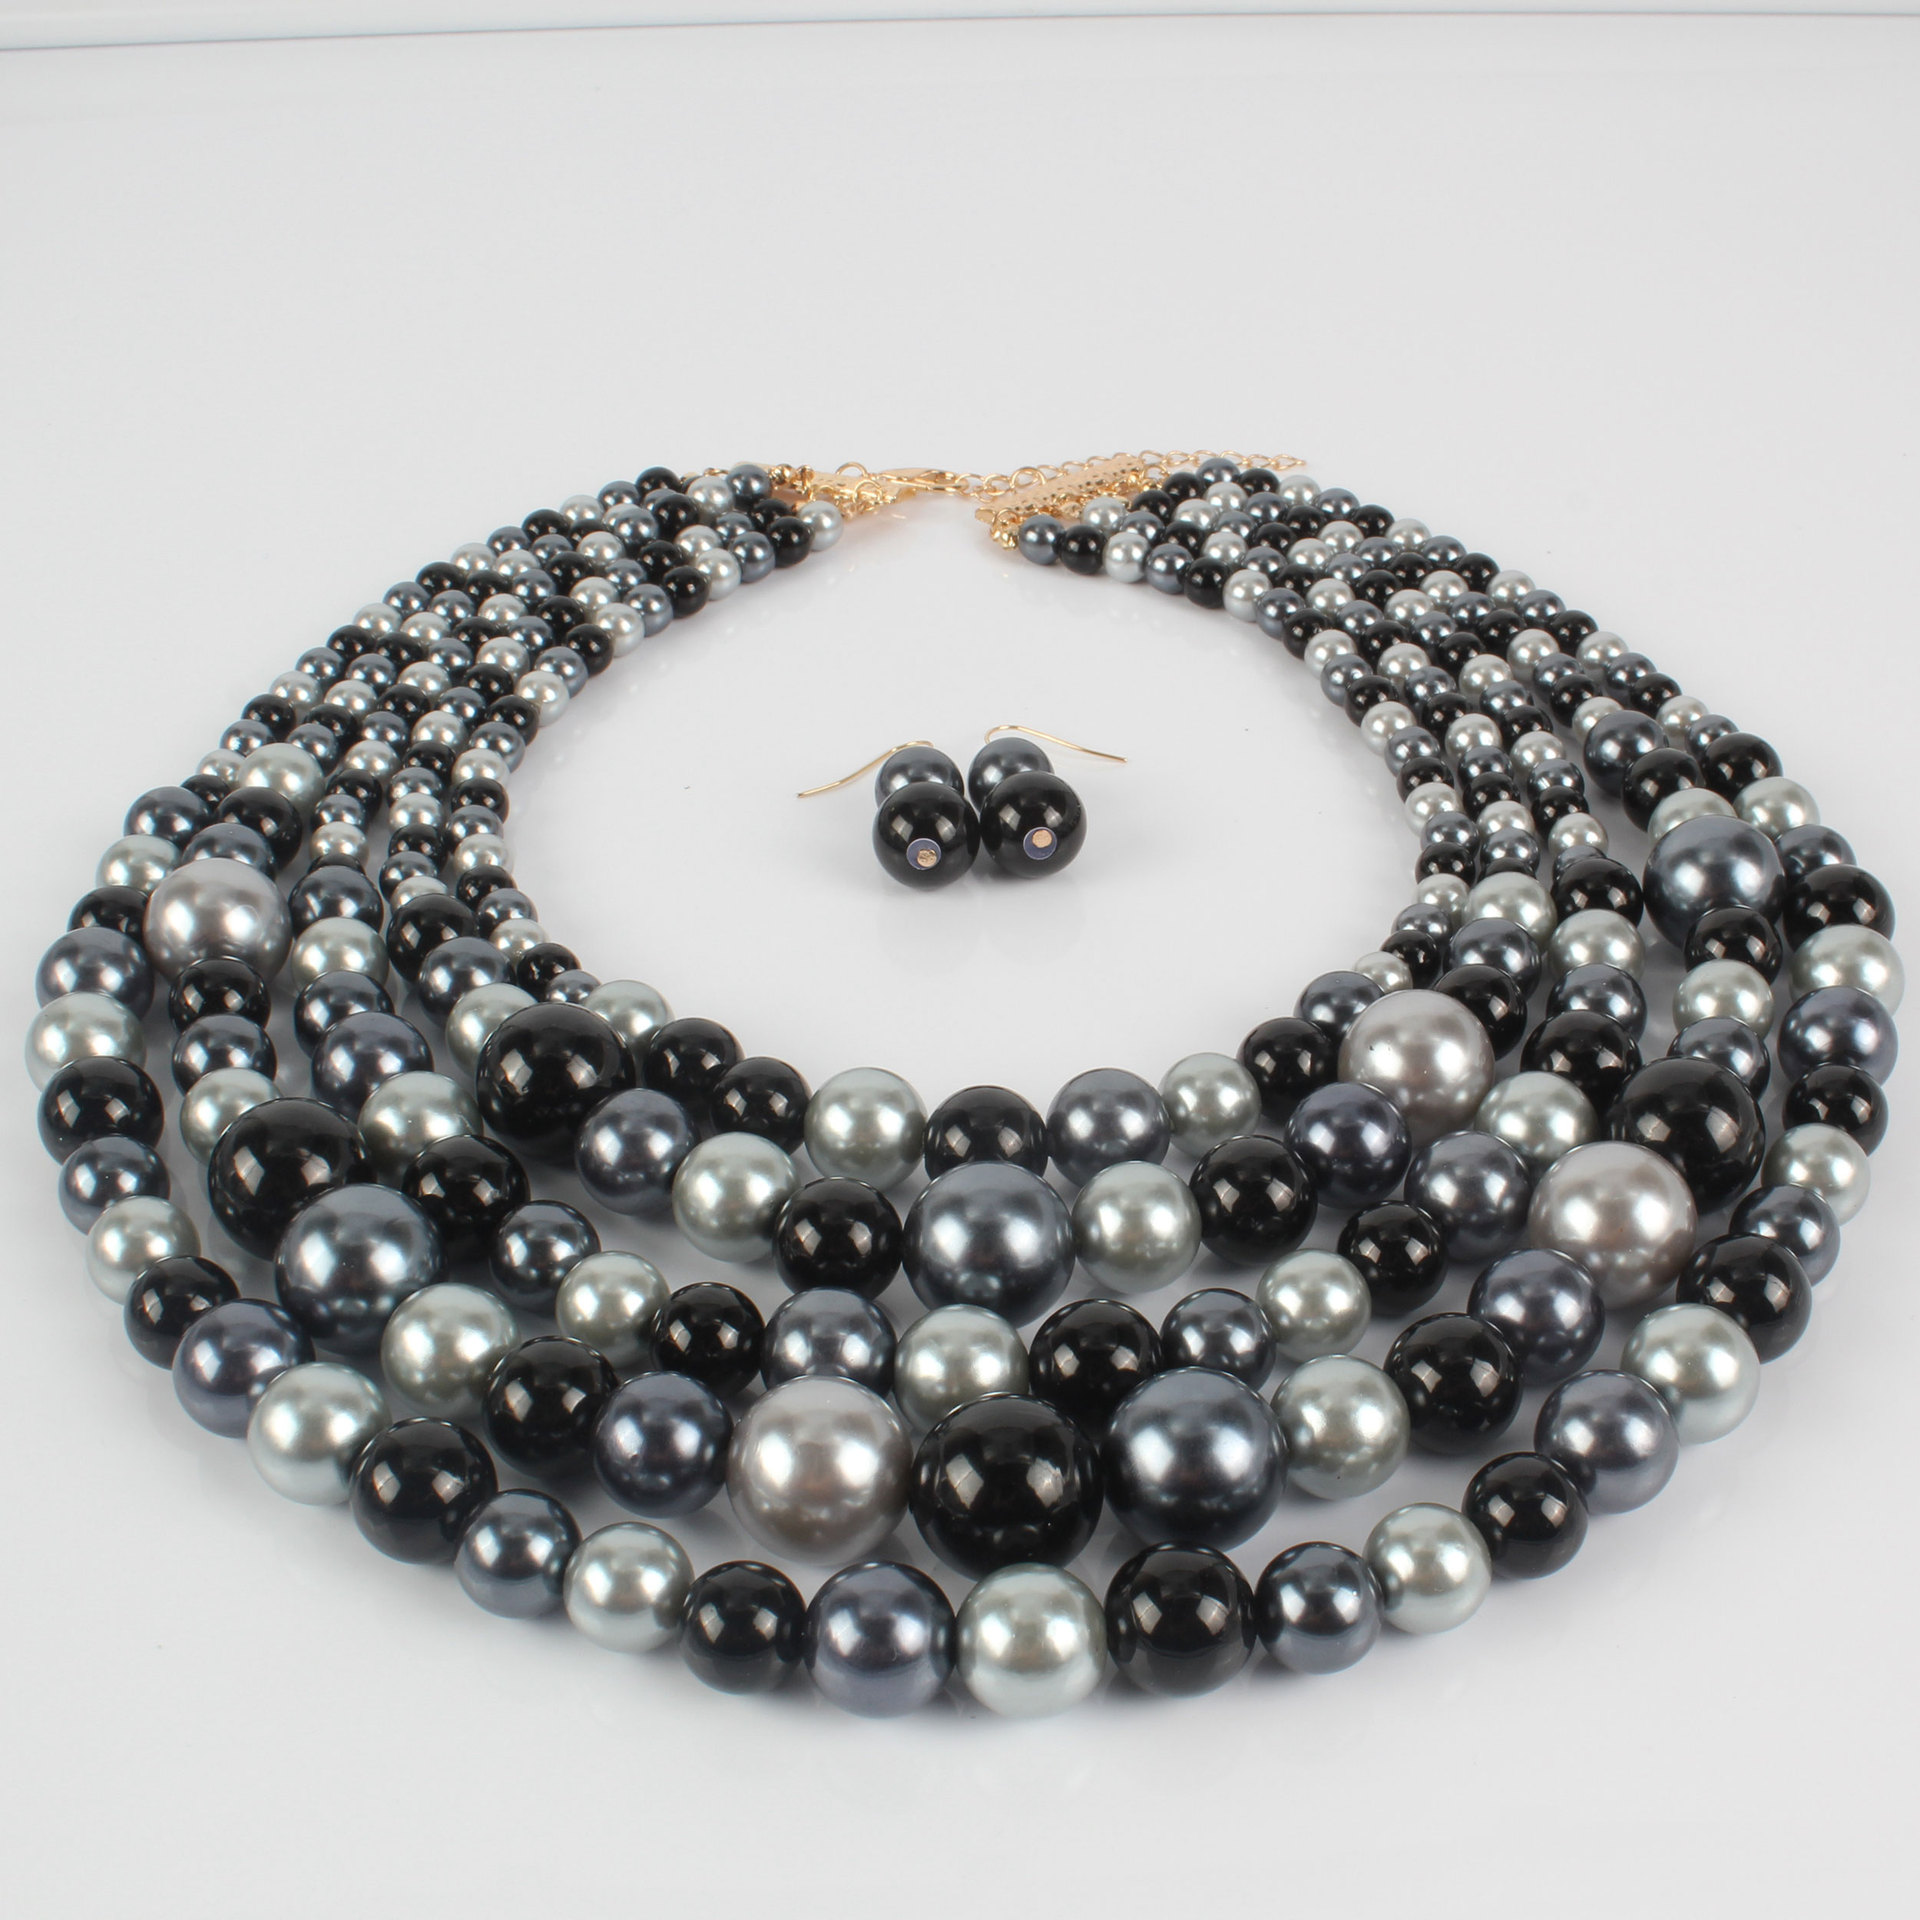 Womens geometric beads beaded beaded Necklaces CT190505120159